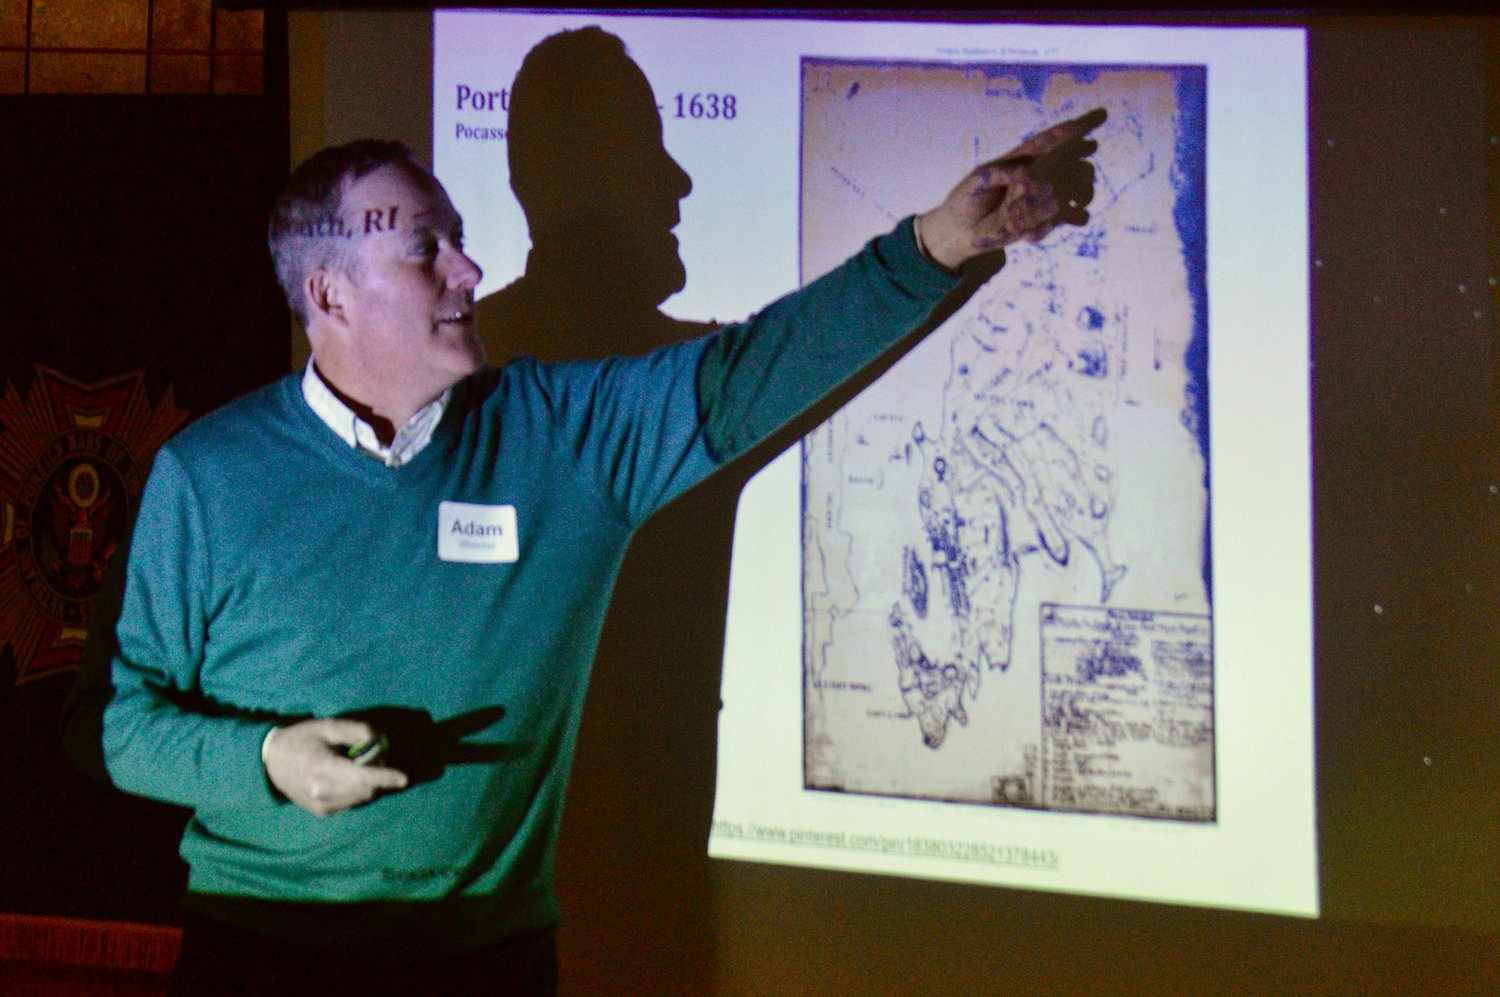 Adam Whelchel, director of science at The Nature Conservancy in Connecticut, points to a map of the town during the first day of the workshop on April 6.